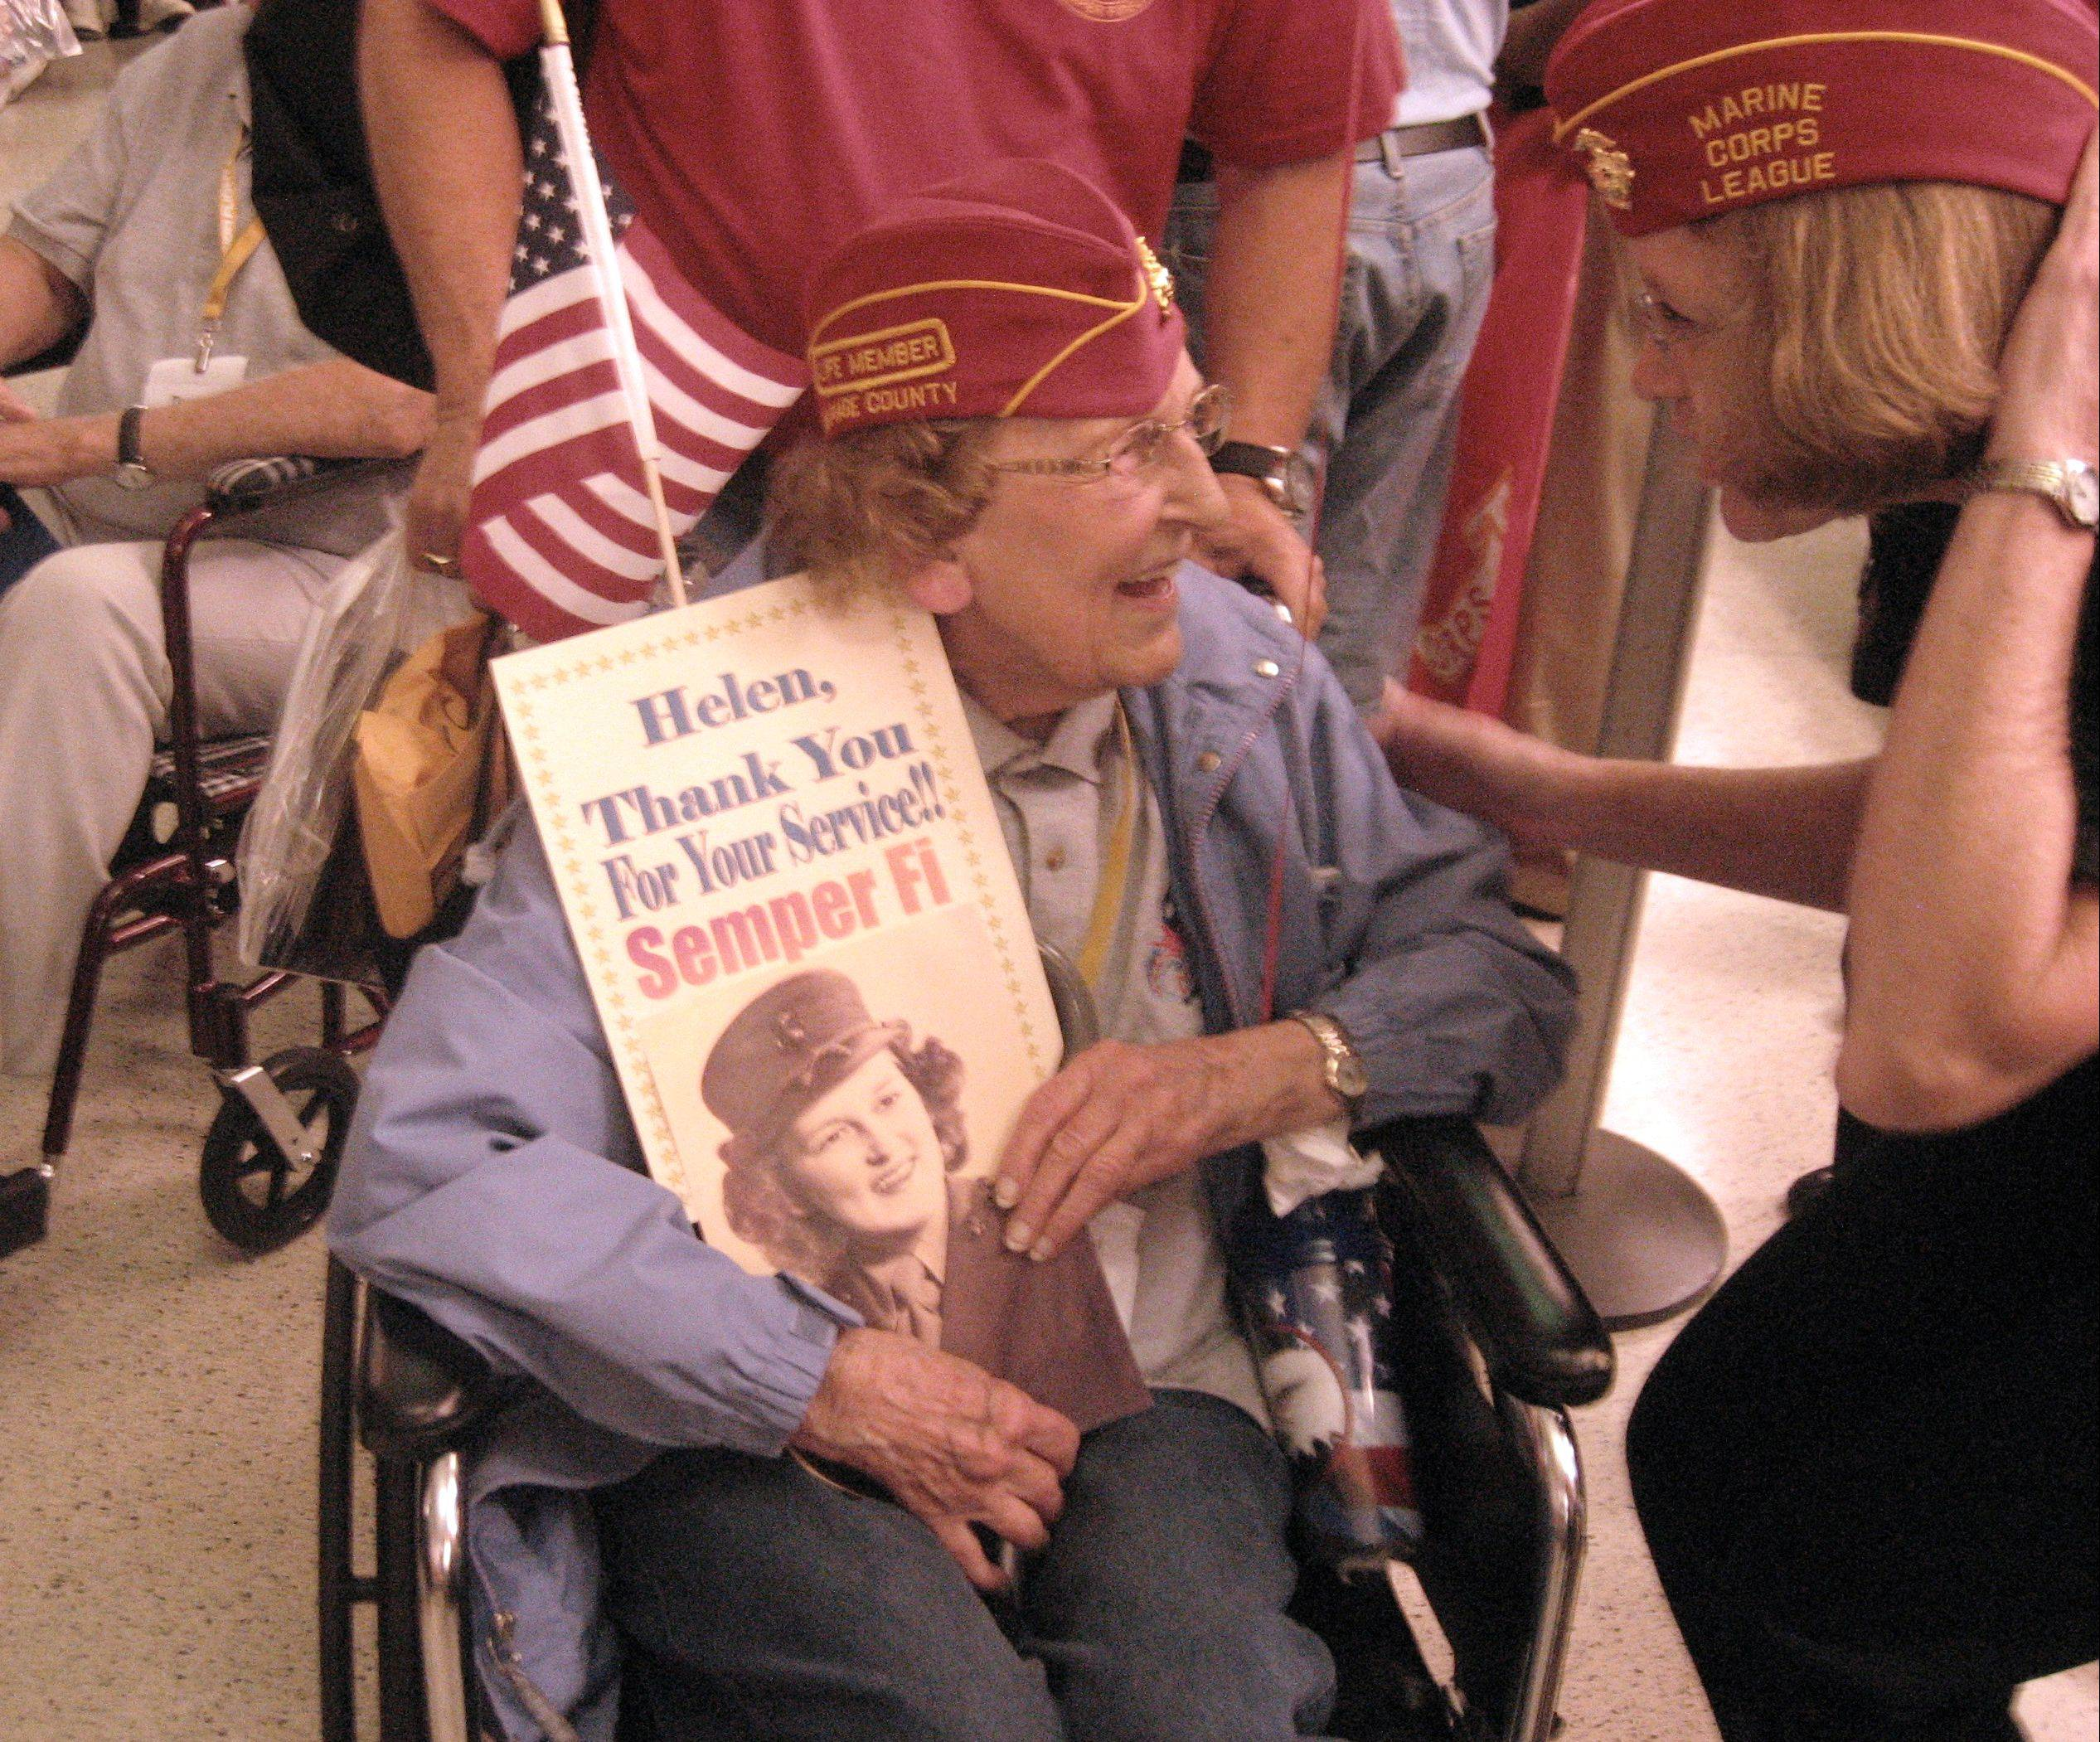 Clutching a poster featuring her likeness from her days as a Marine Corps airplane mechanic, Helen Ehlers, 89, of Wheaton, soaks in the adoration from a fellow DuPage County Marine Corps League member welcoming her home from an Honor Flight trip to Washington, D.C., to see the World War II Memorial.